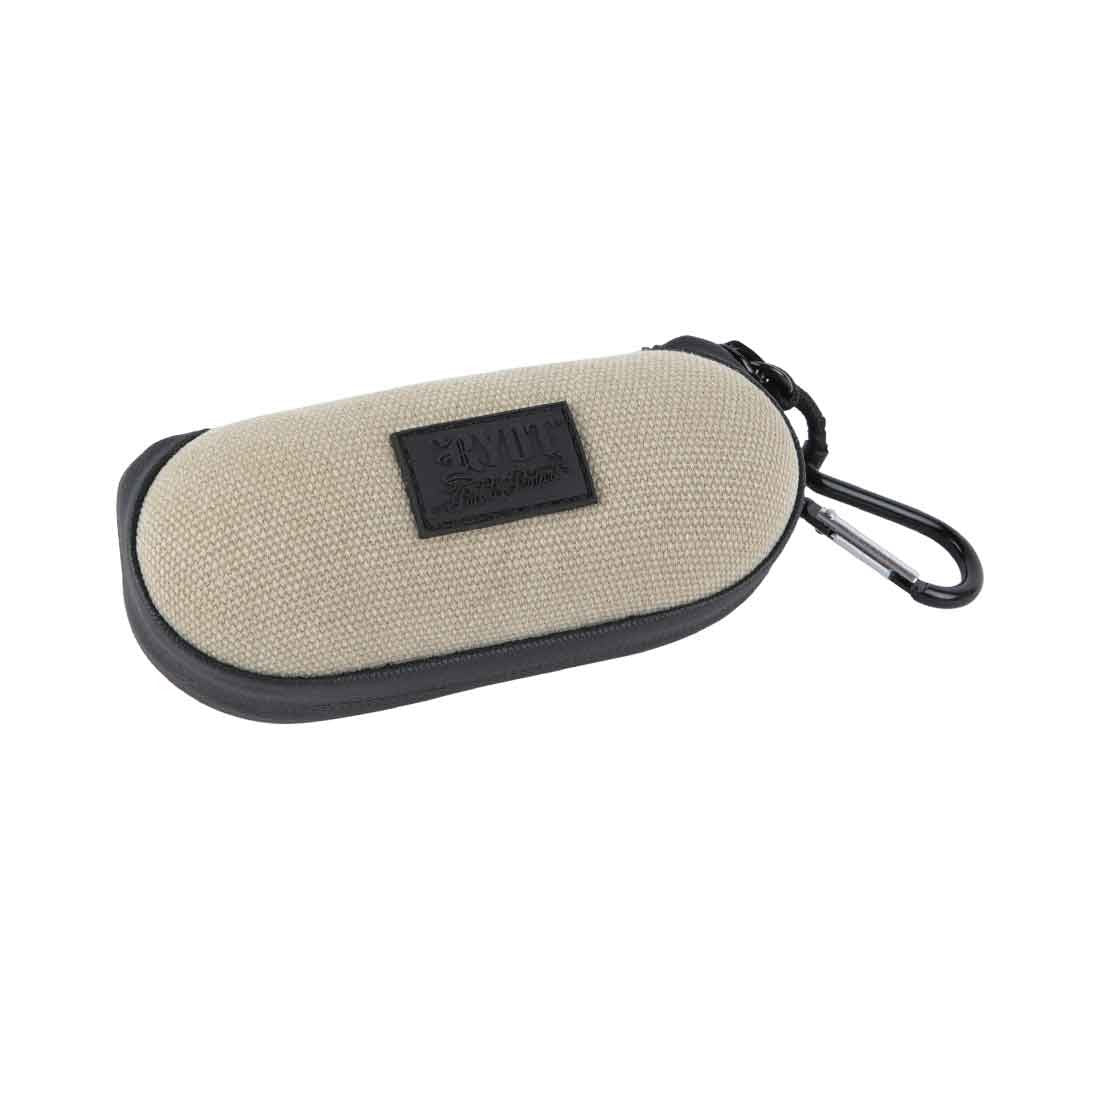 RYOT Smell Safe Hard Case - Small